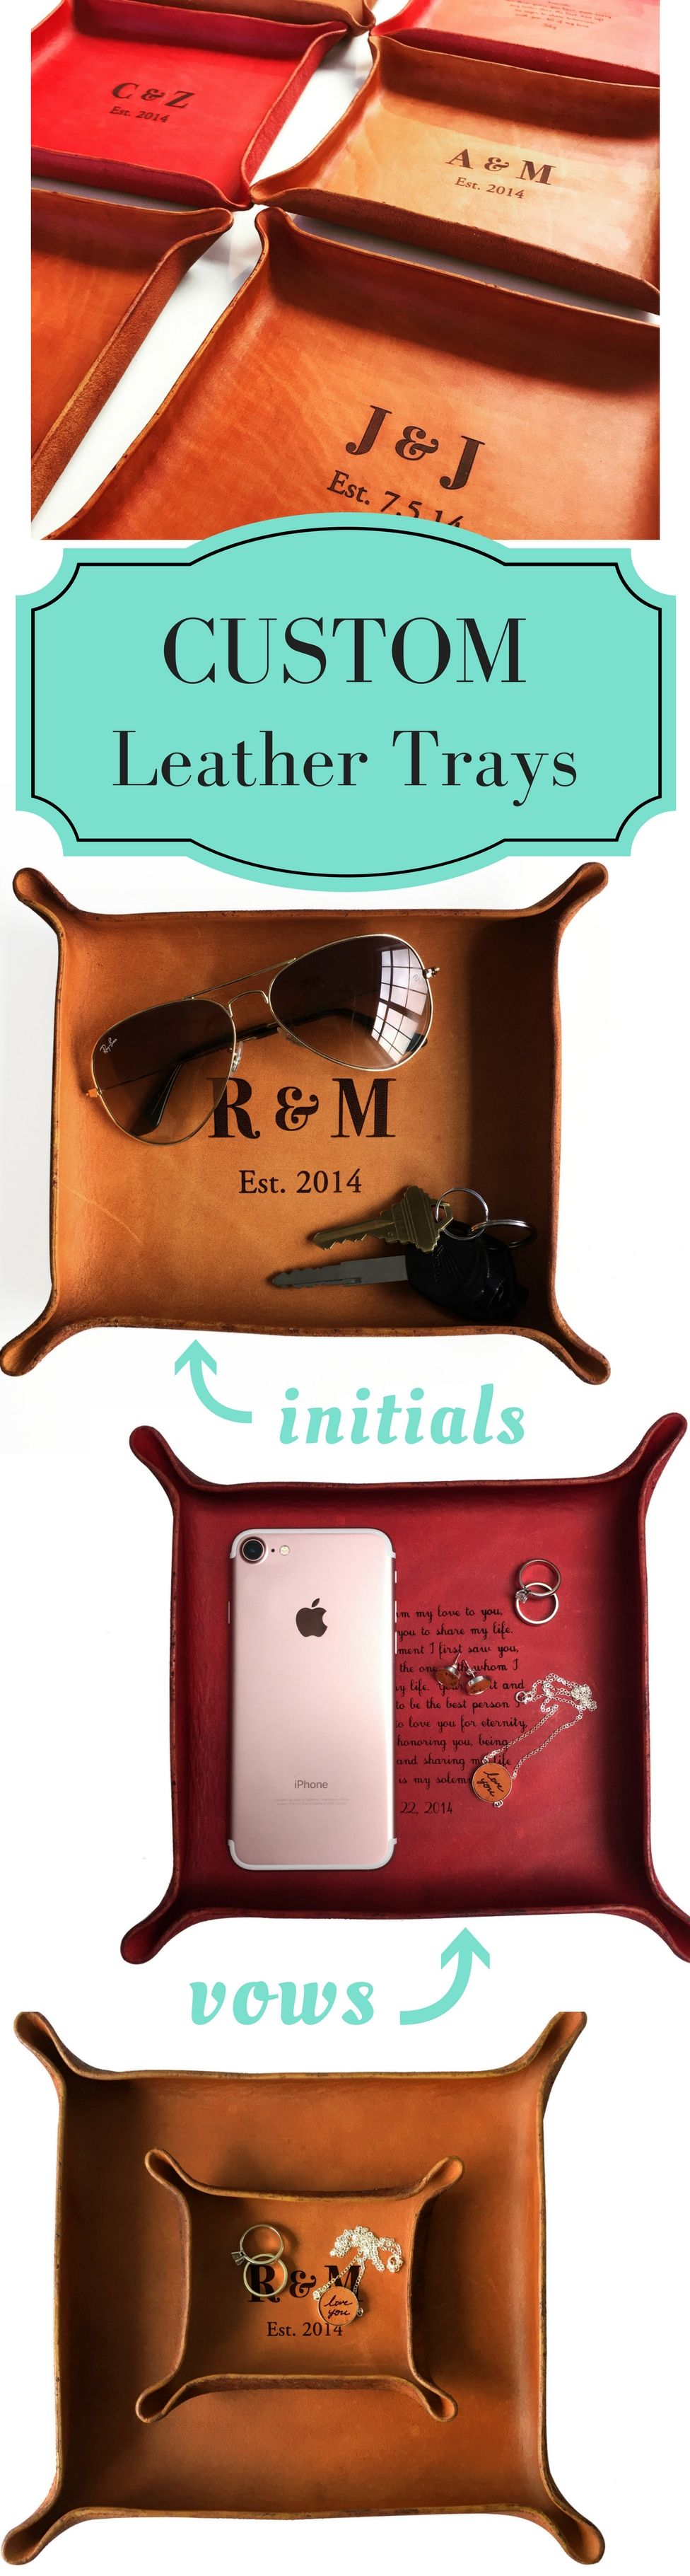 eb91bbfdfffa LOVE this meaningful leather anniversary gift! Personalize your initials or  wedding vows on a genuine leather tray. Click to design yours now!